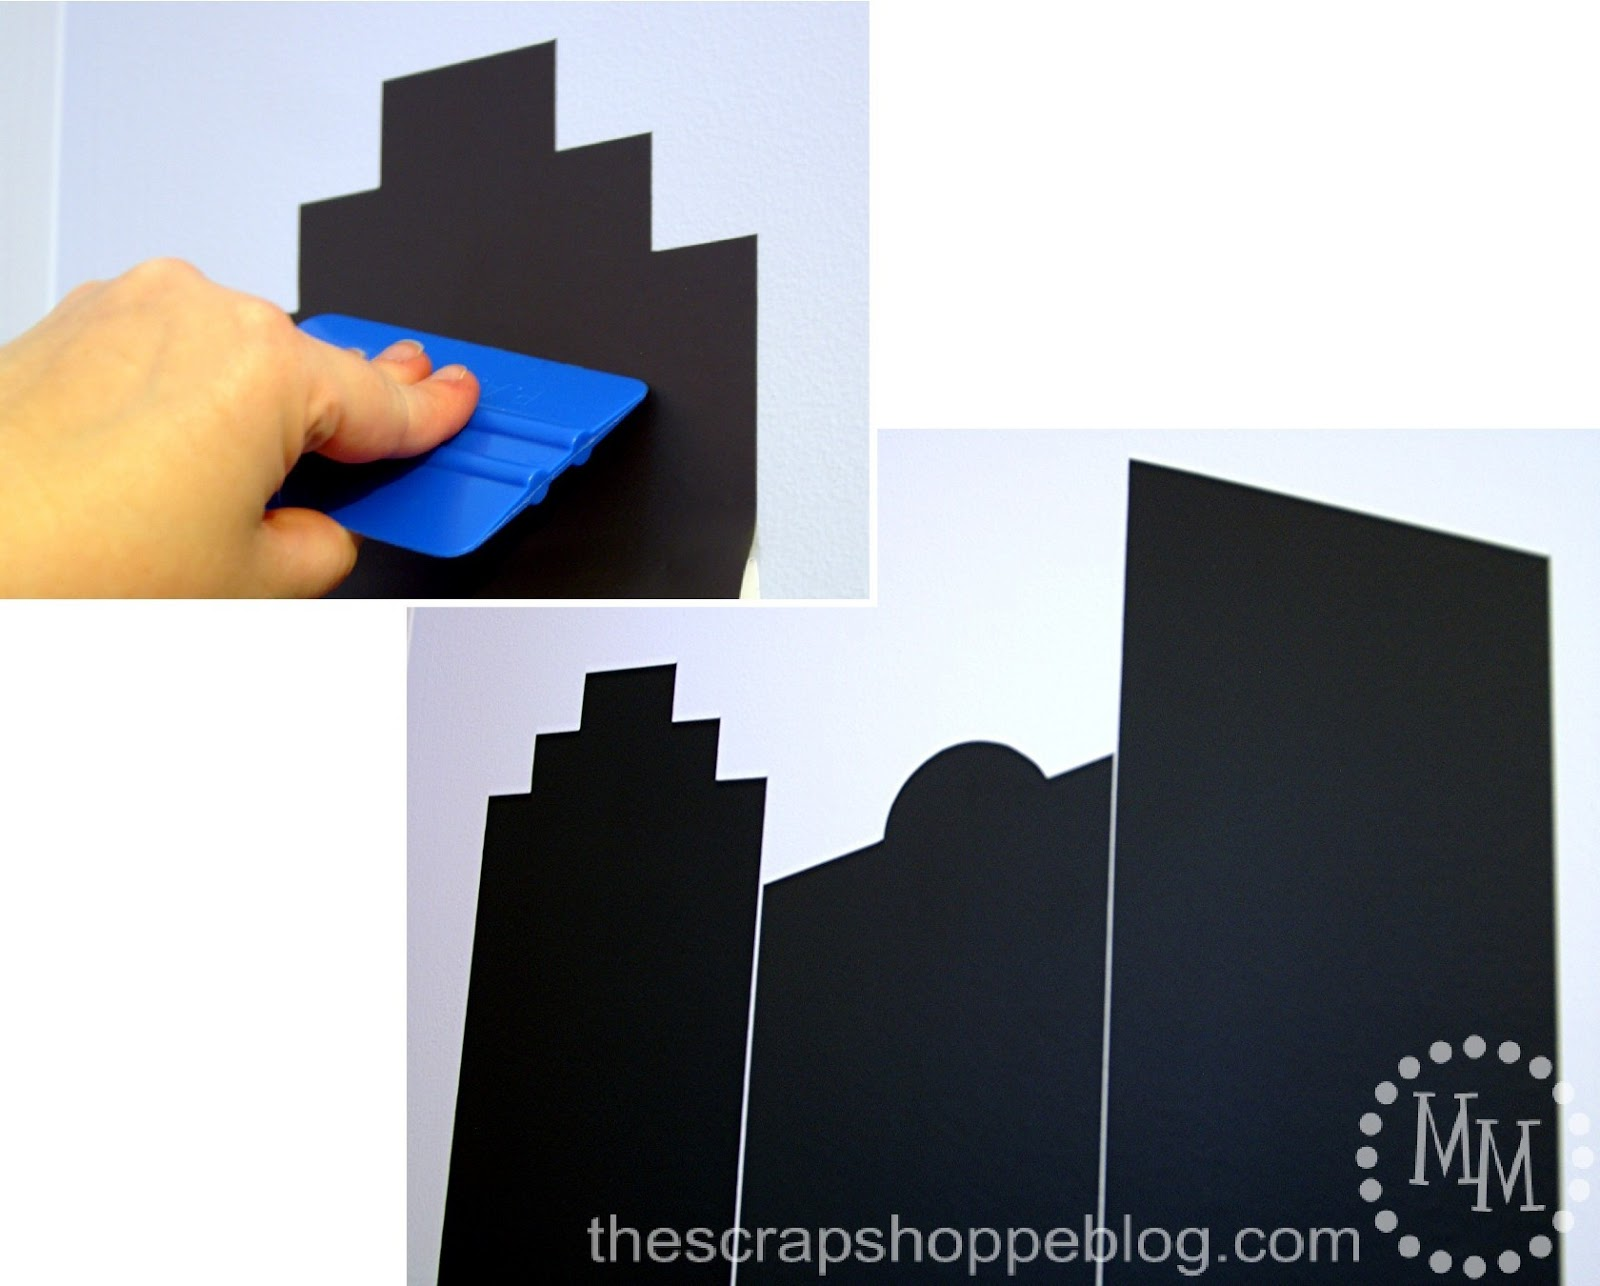 Popular Reach behind the vinyl sheet and grasp the paper backing that you folded up and slowly pull it up the wall smoothing the vinyl against the wall as you go